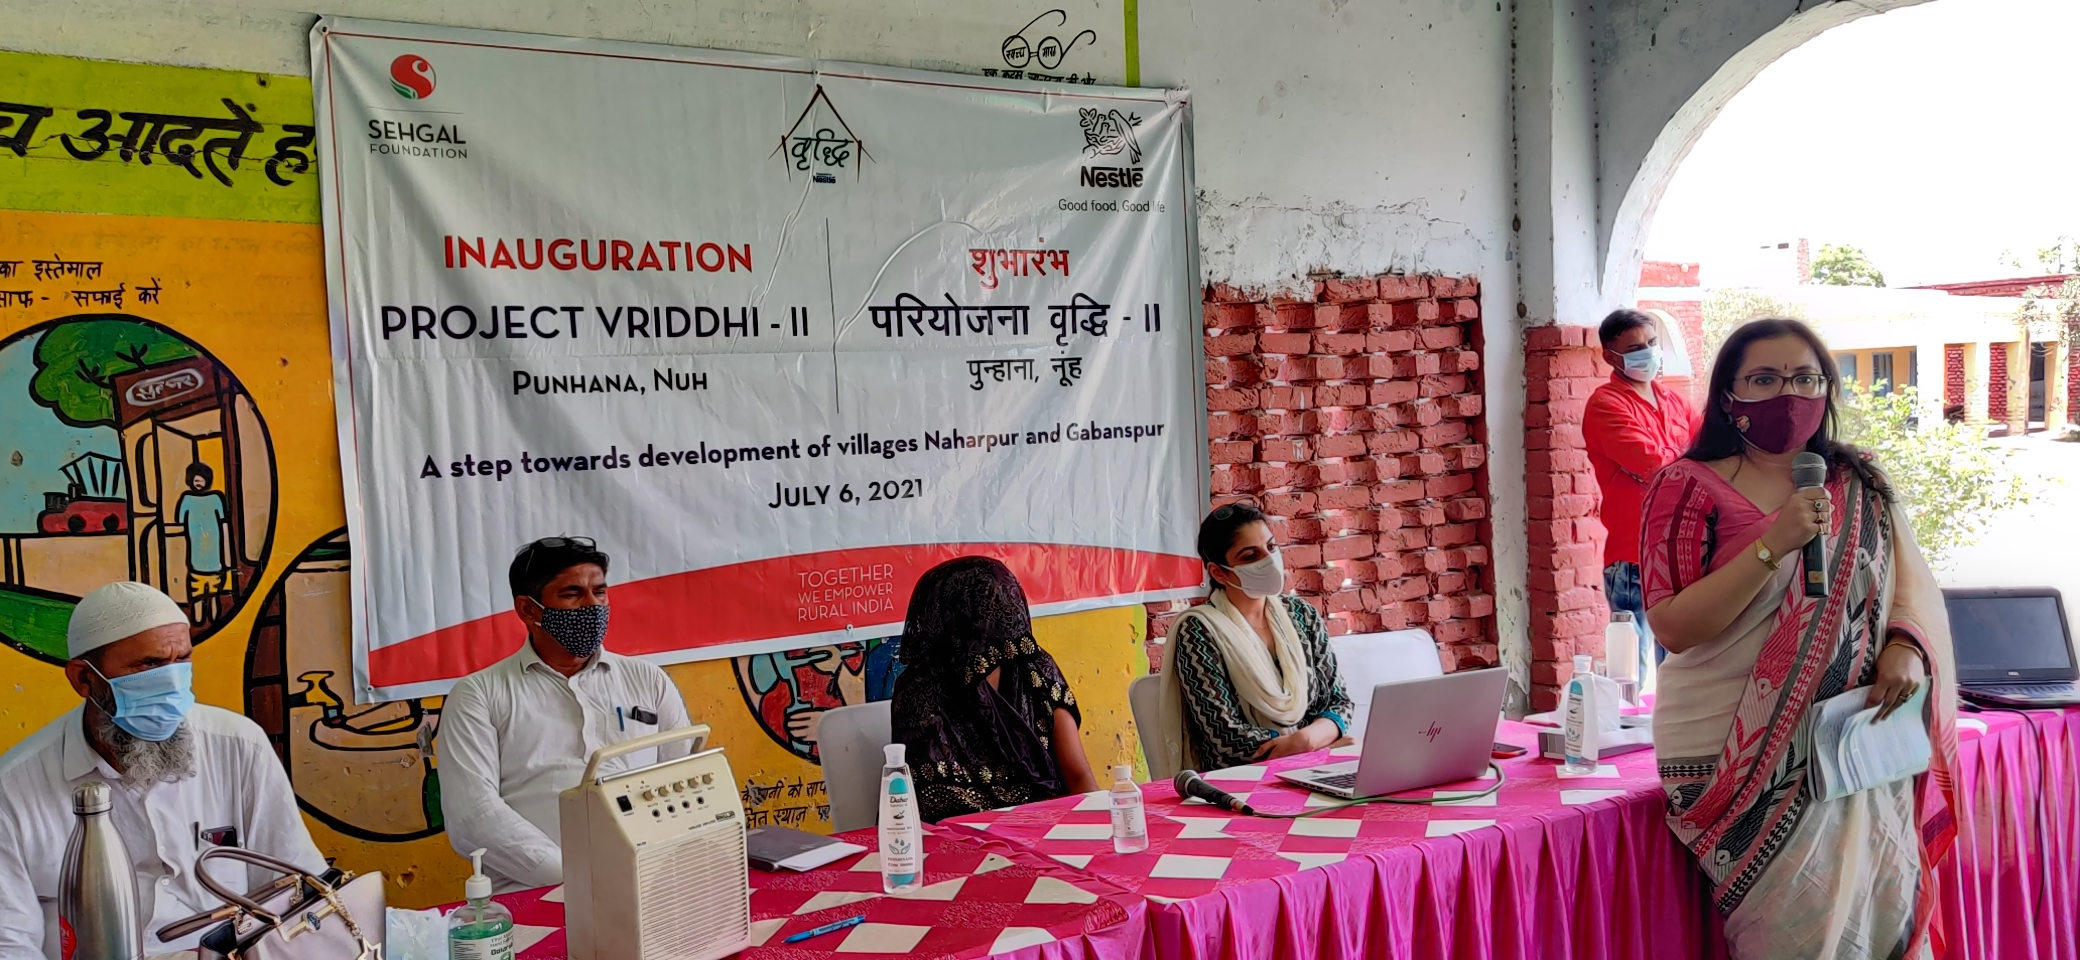 Nestle and S M Sehgal Foundation launch Project Vrisshi 2.0